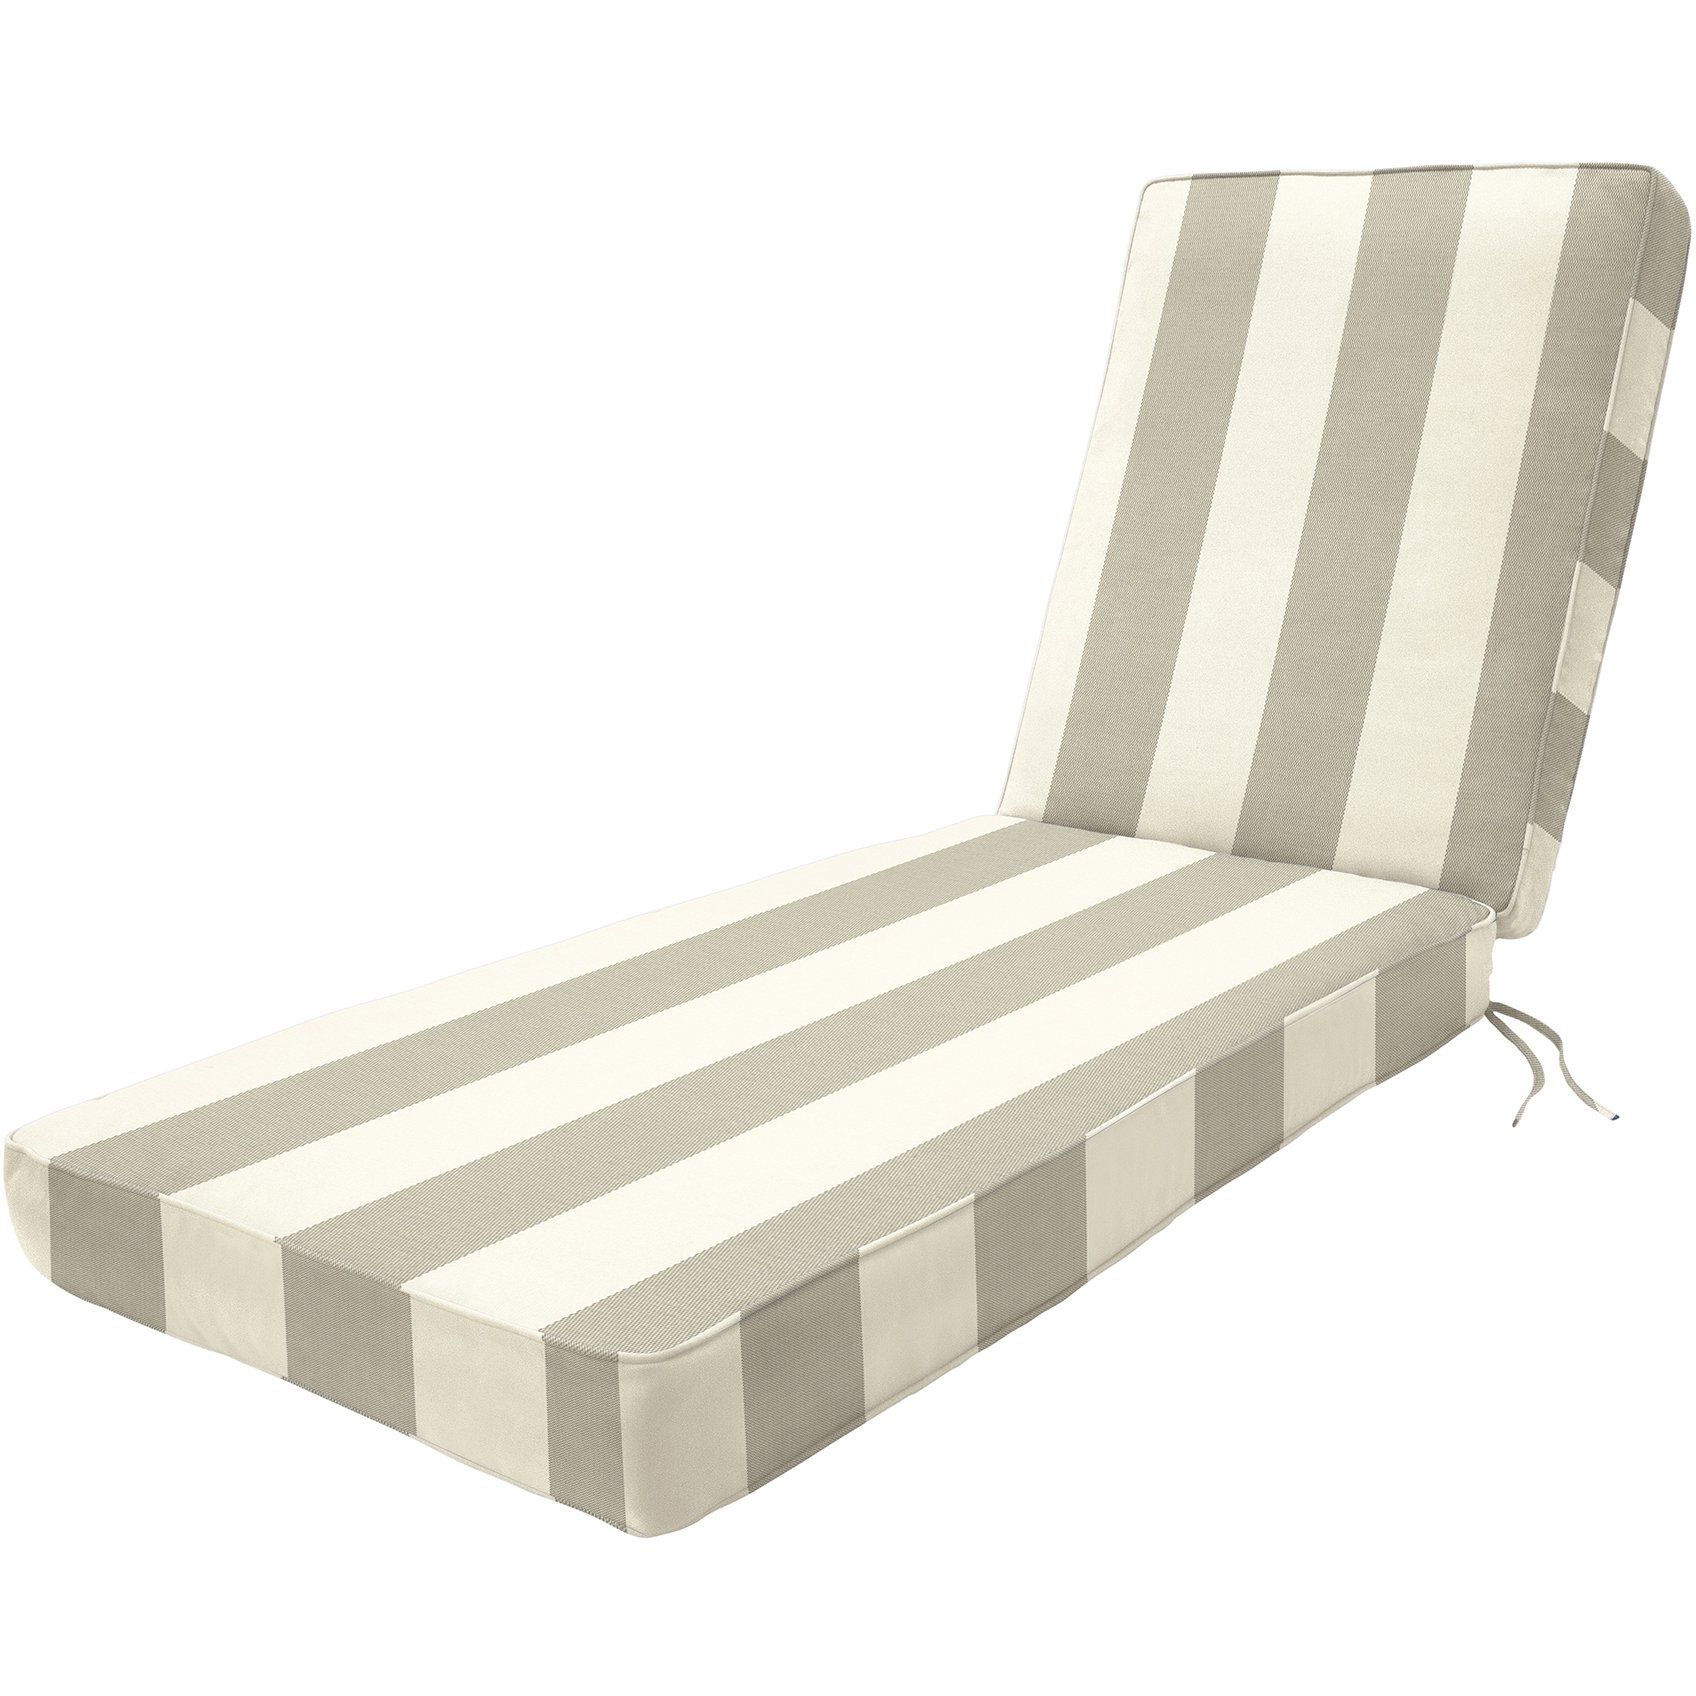 Double Chaise Lounge Cushion Throughout Most Popular Oversized Chaise Lounge Cushions Outdoor Sun Lounge Cushions Sale (View 4 of 15)